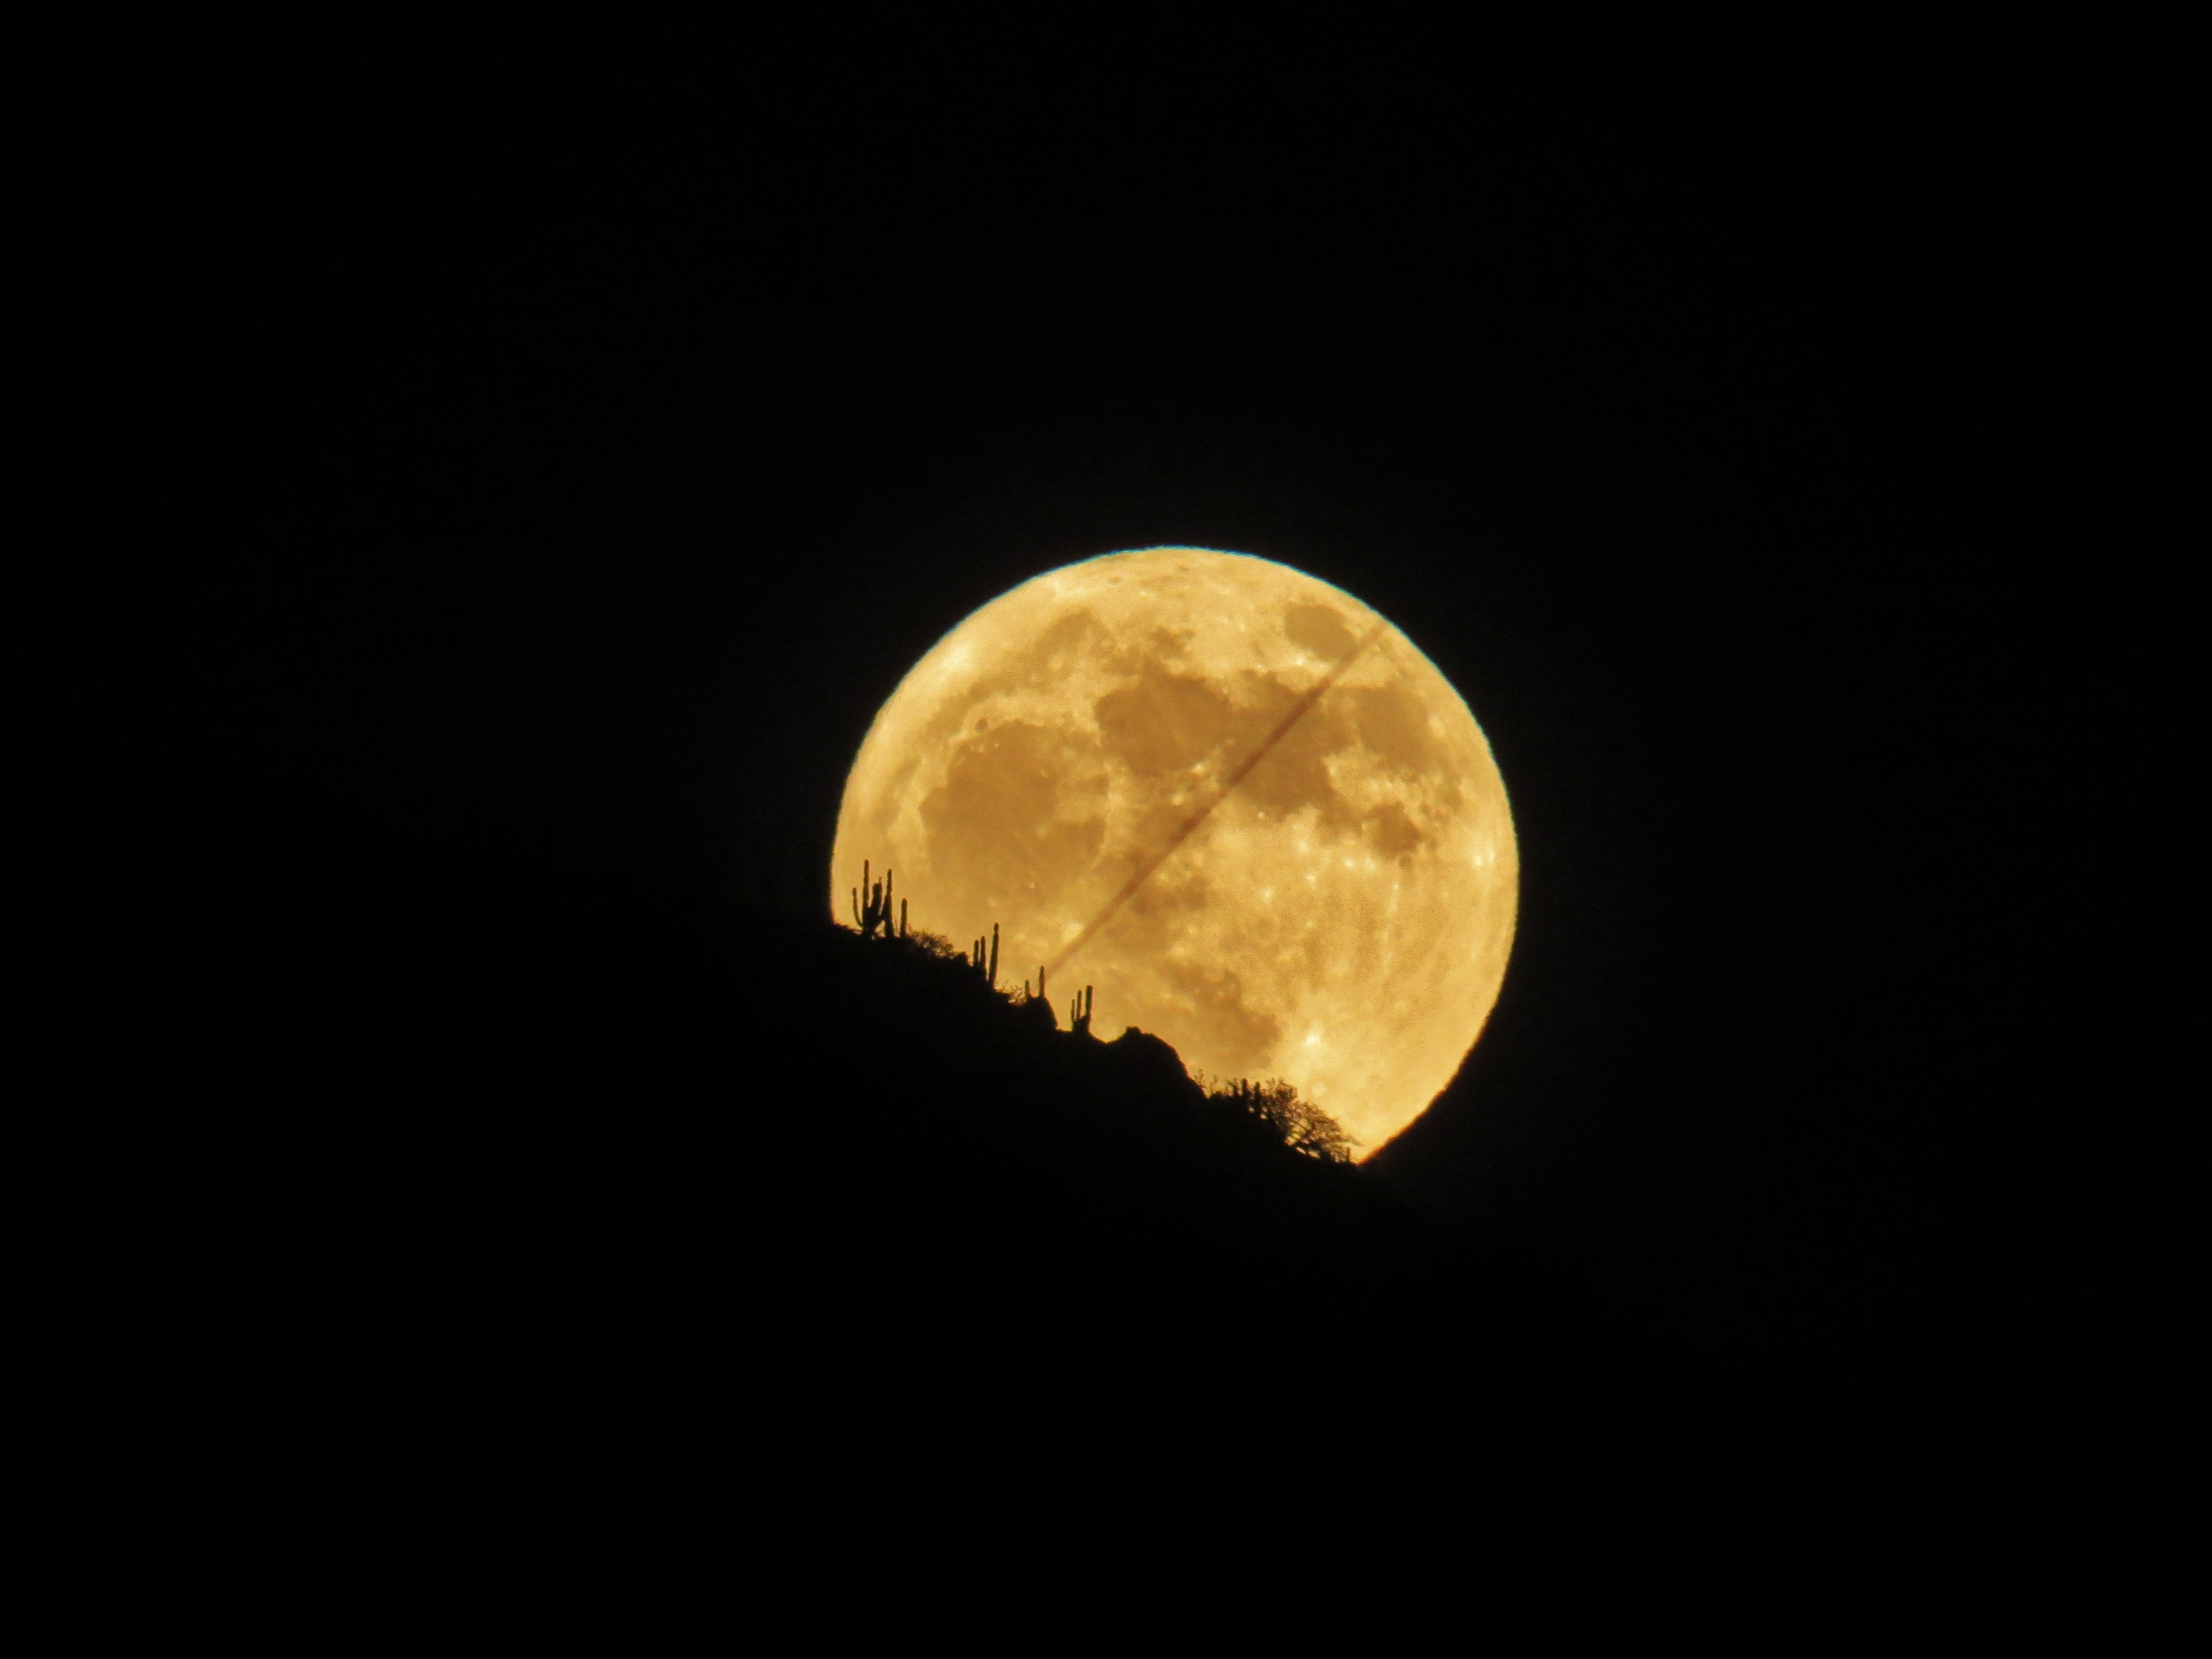 halloween-adventures-full-moon-gaston-bazzino-ferreri-581111-unsplash